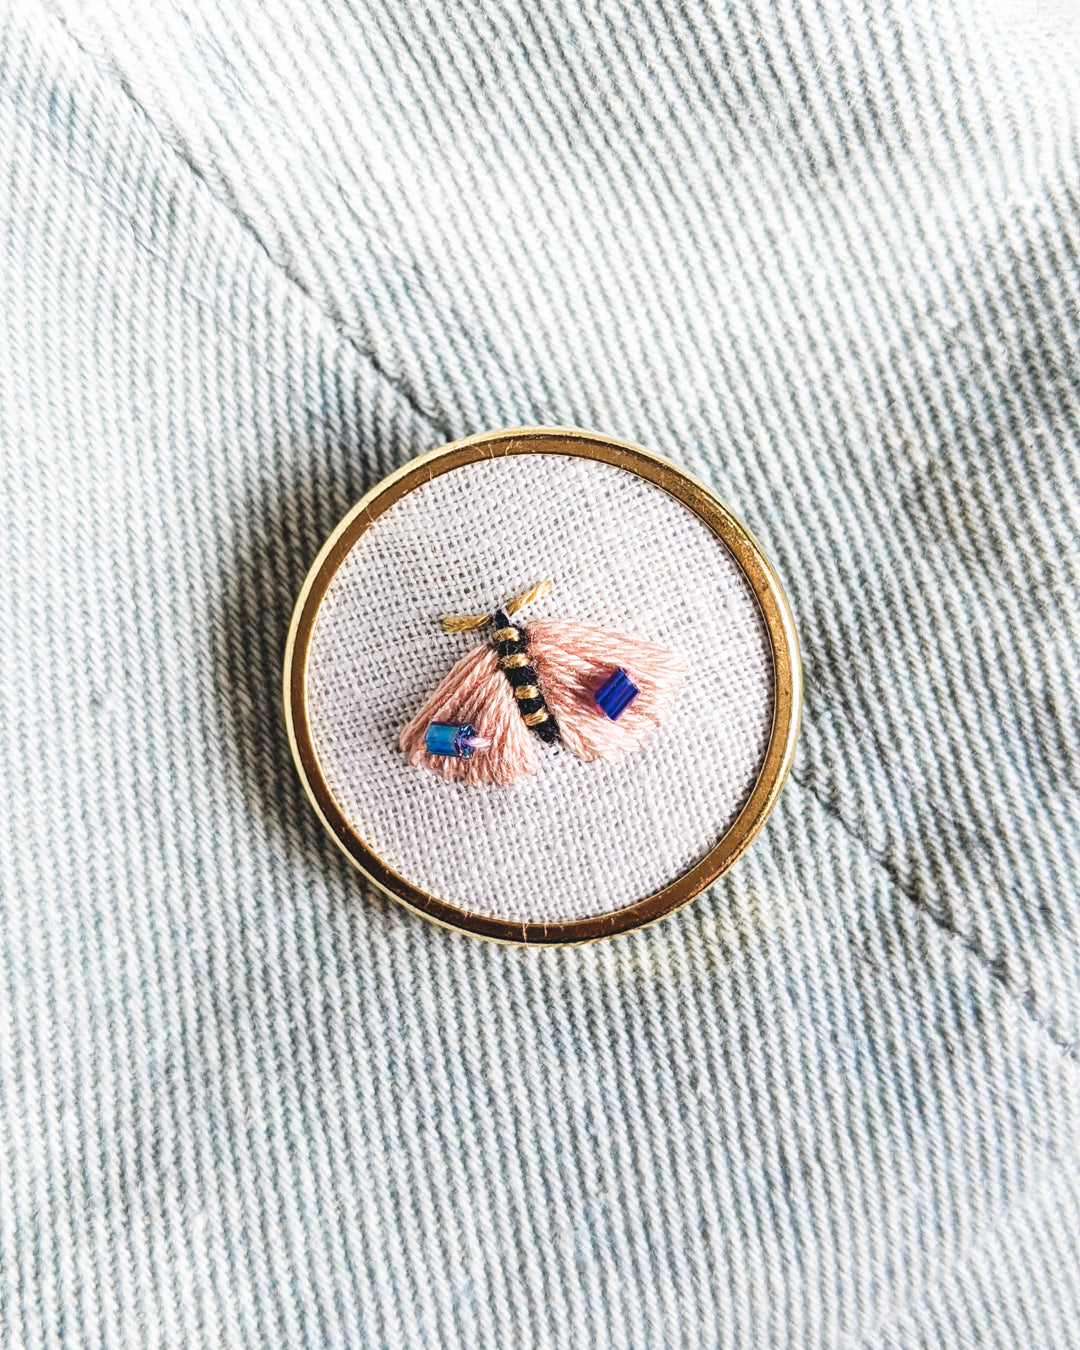 Embroidered Butterfly Moth Pin - no. 4